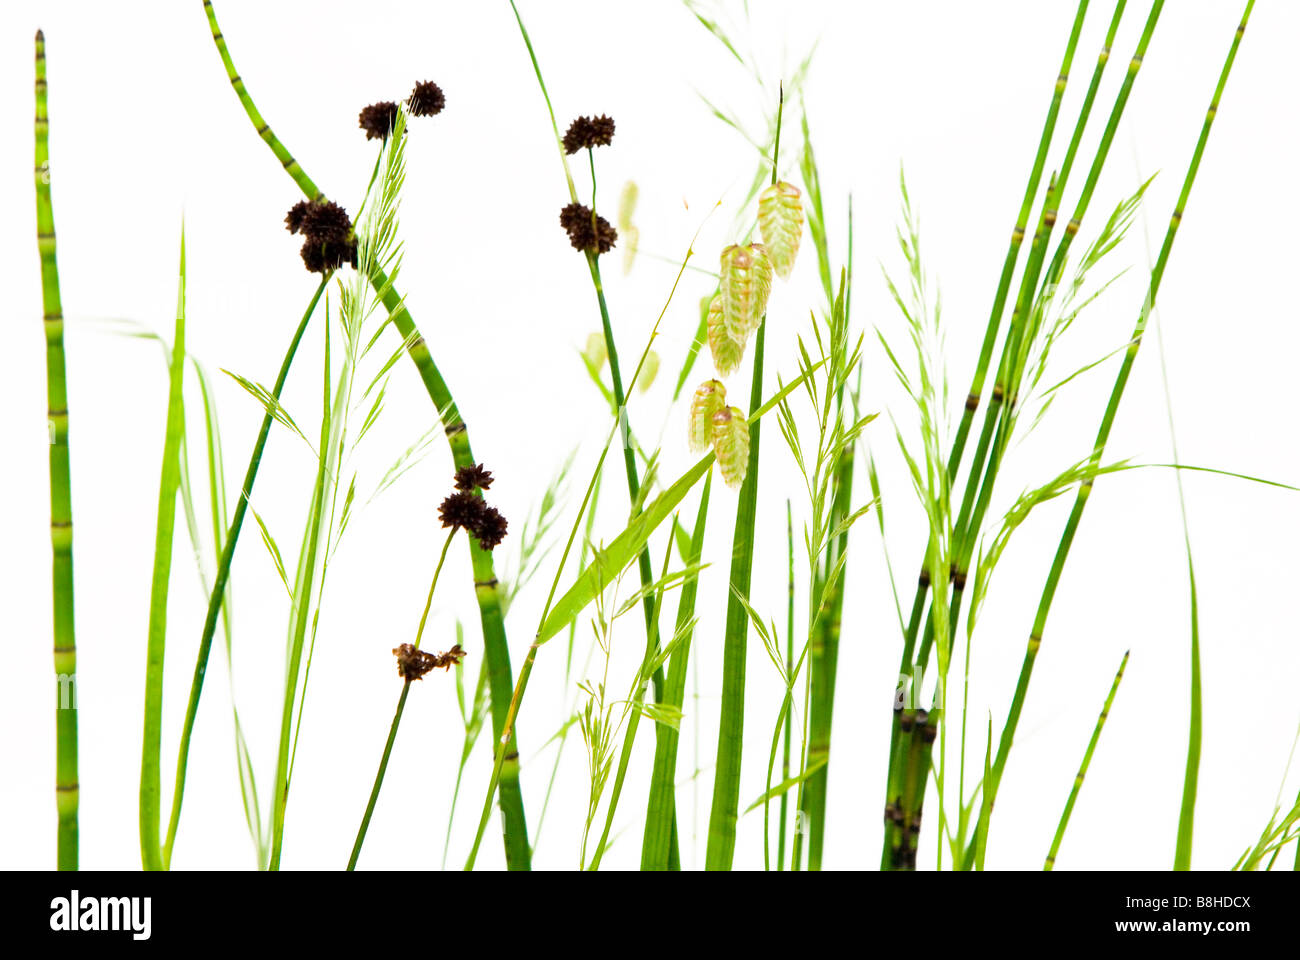 Studio shot of wild ornamental grasses on a white background. - Stock Image